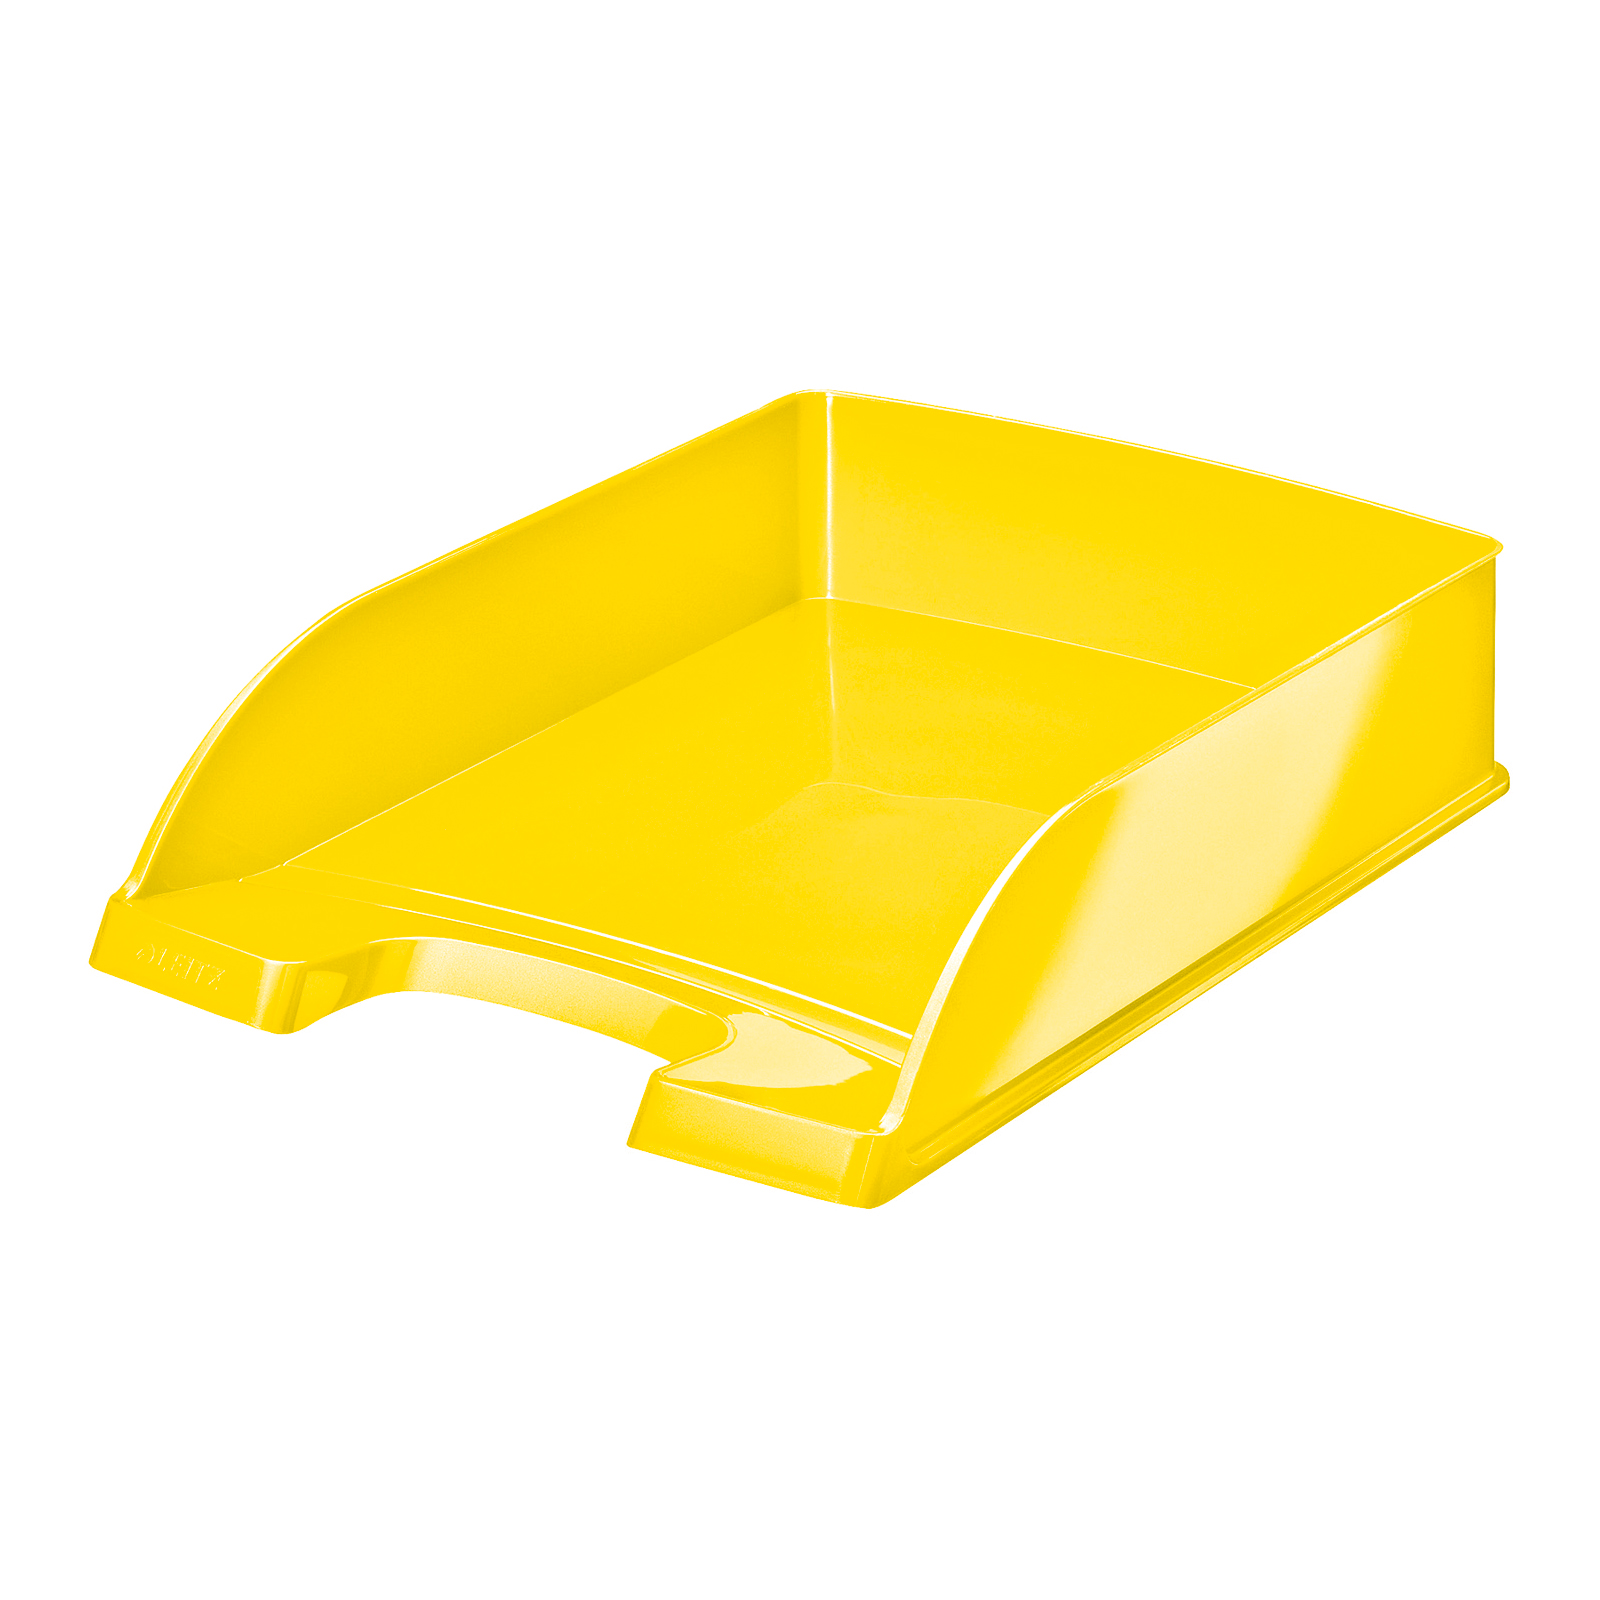 Letter Trays Leitz WOW Letter Tray Stackable Glossy Yellow Ref 52263016